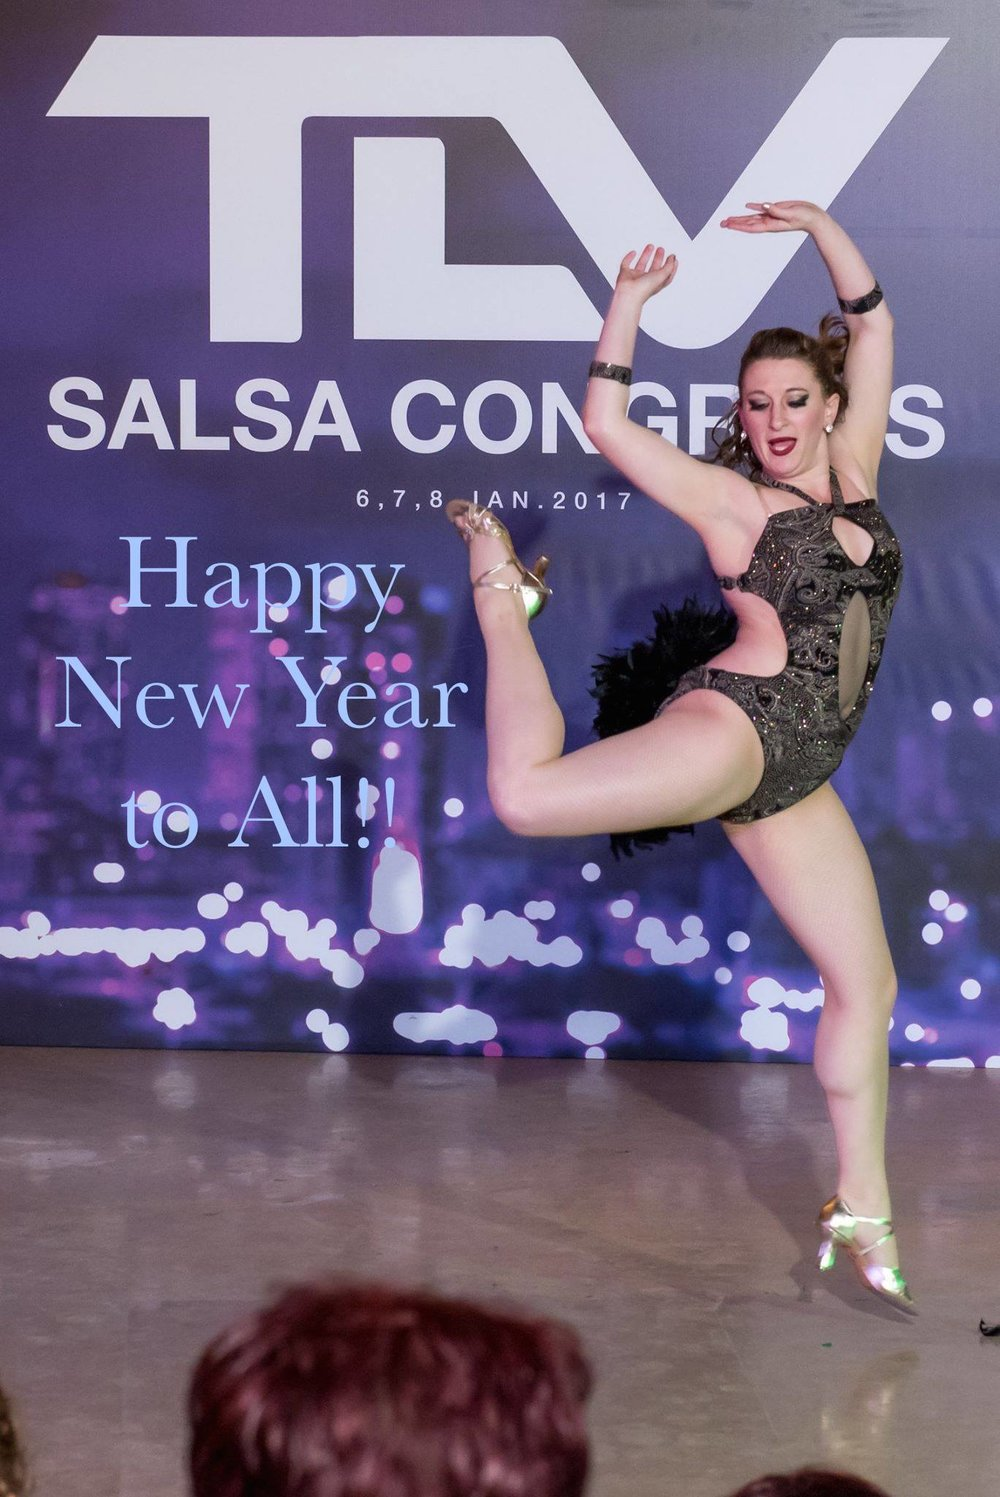 tlv salsa jump happy new year.jpg